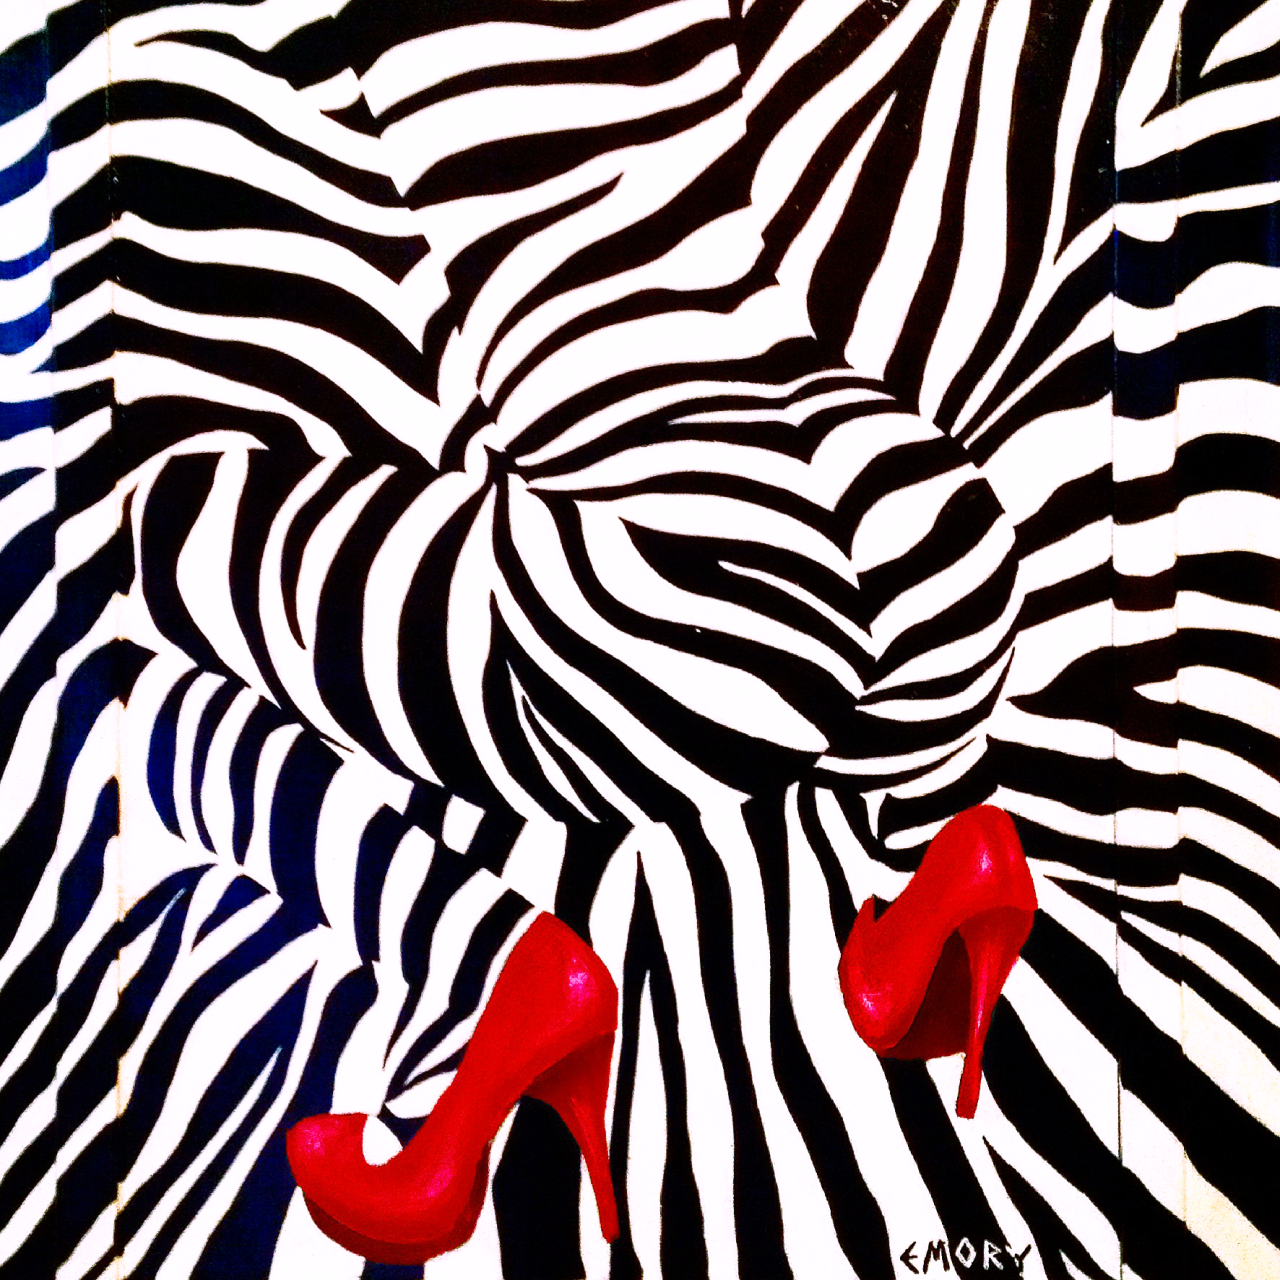 Zebra LOVE by Artist, Blake Emory at the SPiN Galleries in Chelsea NYC. This Thursday, June 26th. 6-8PM. This will be a great show!